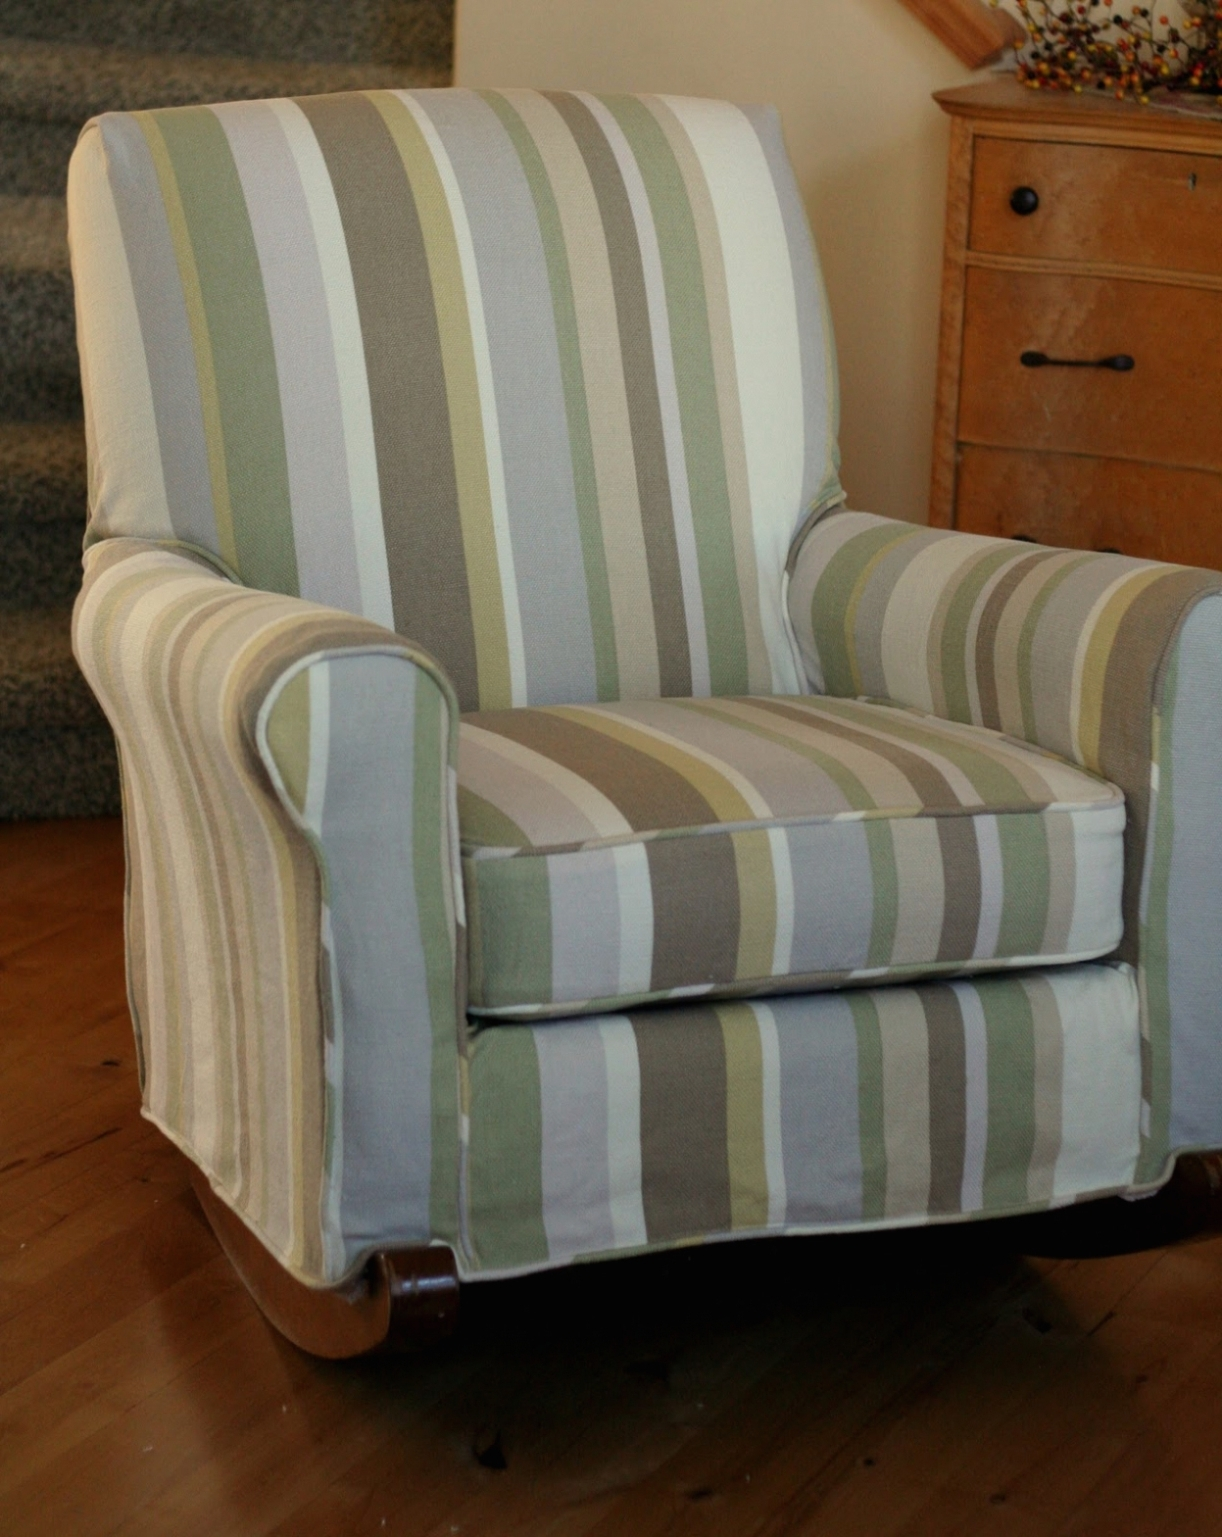 Widely Used Upholstered Rocking Chairs In Furniture: Table & Chair: Upholstered Rocking Chair Covers • Chair (View 15 of 15)